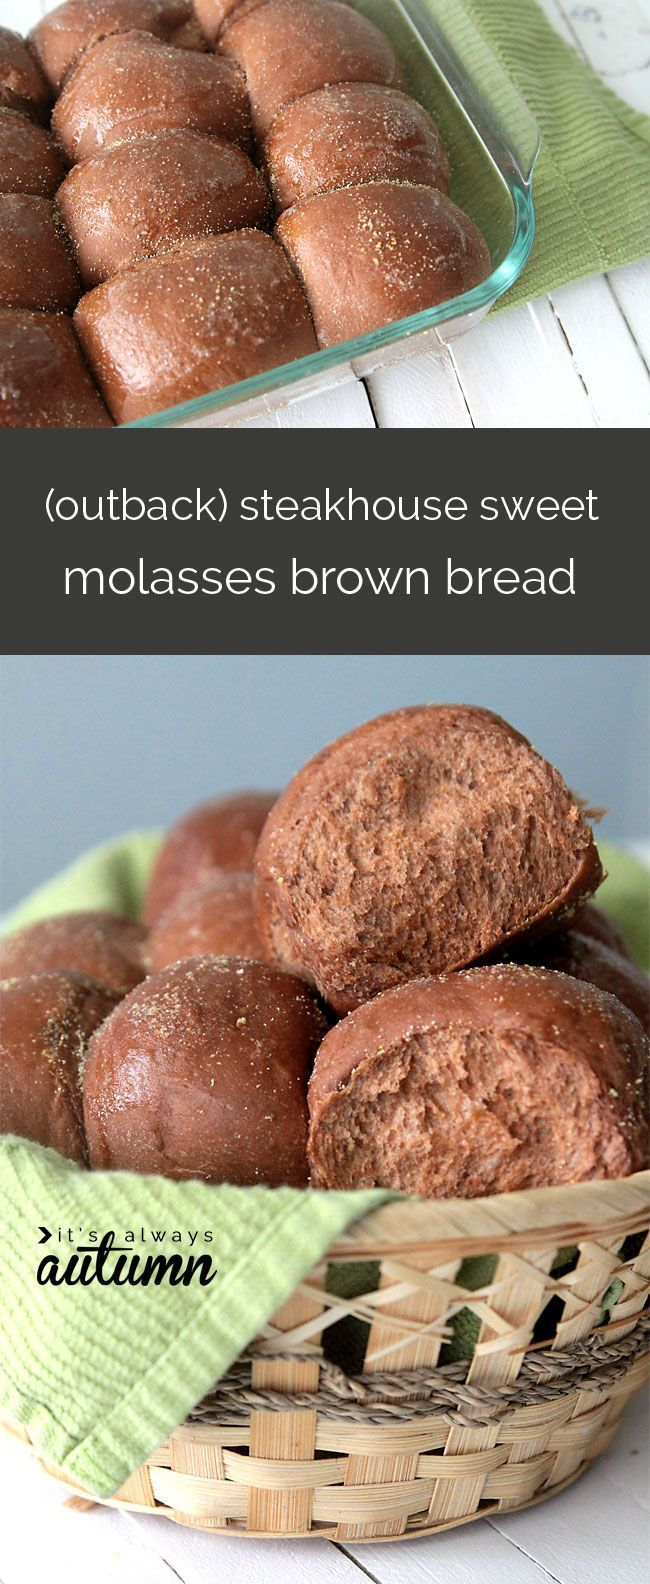 amazing sweet honey molasses brown bread - just like they make at Outback Steakhouse! #copycat recipes